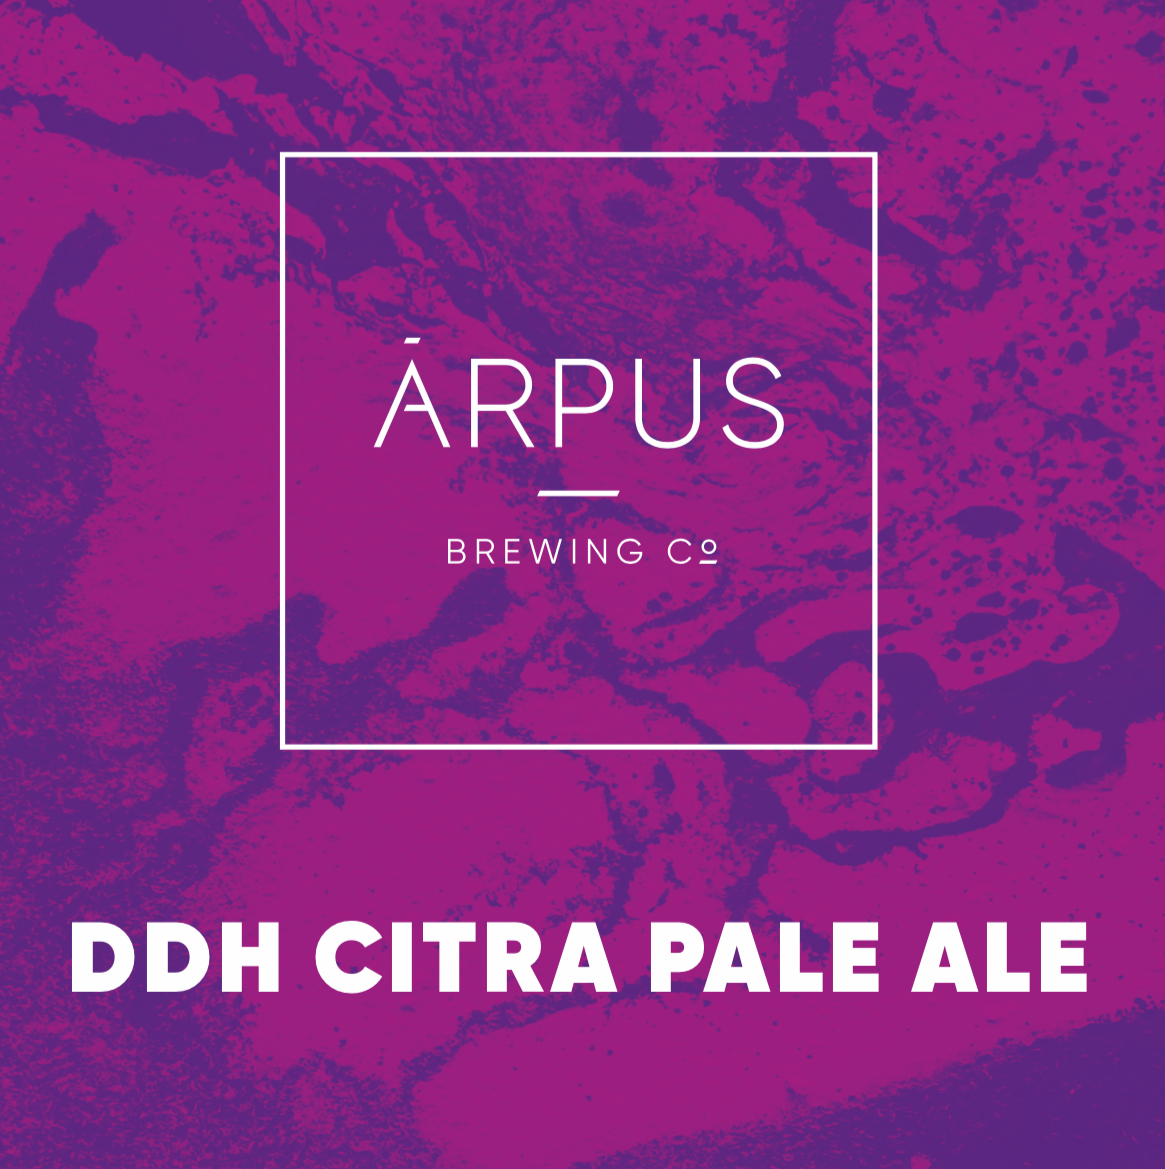 DDH Citra Pale Ale.png